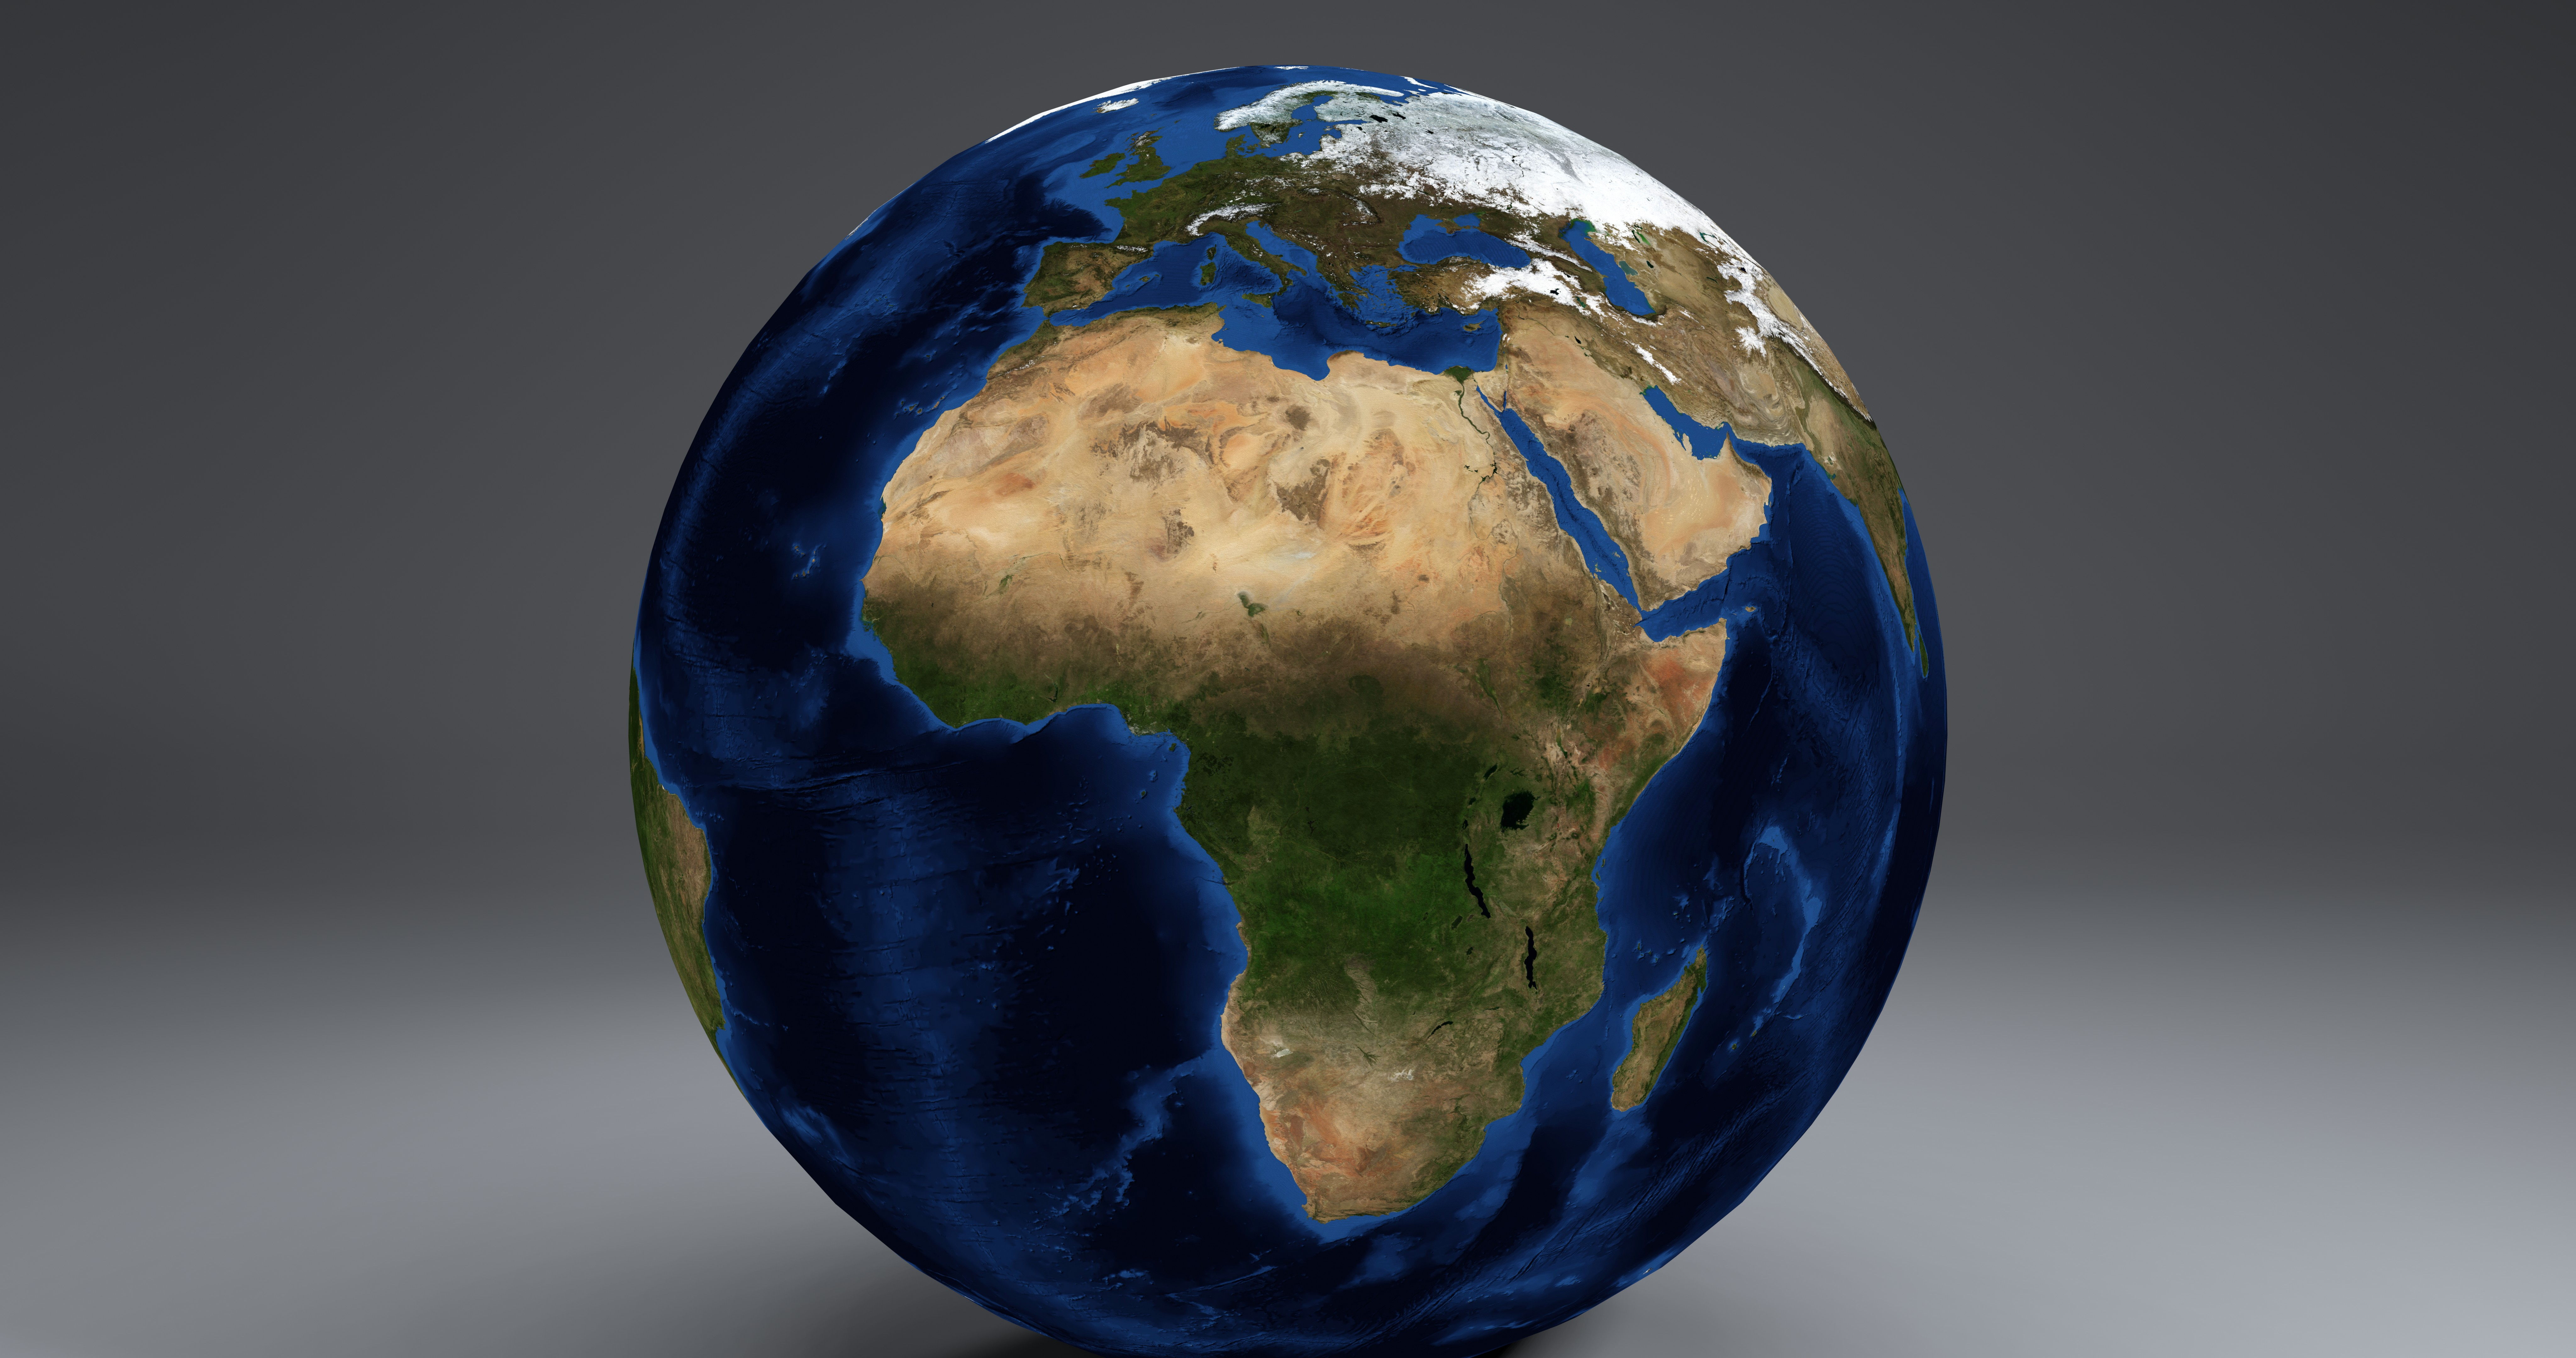 EarthGlobe 21k 3d model 3ds fbx blend dae obj 213033